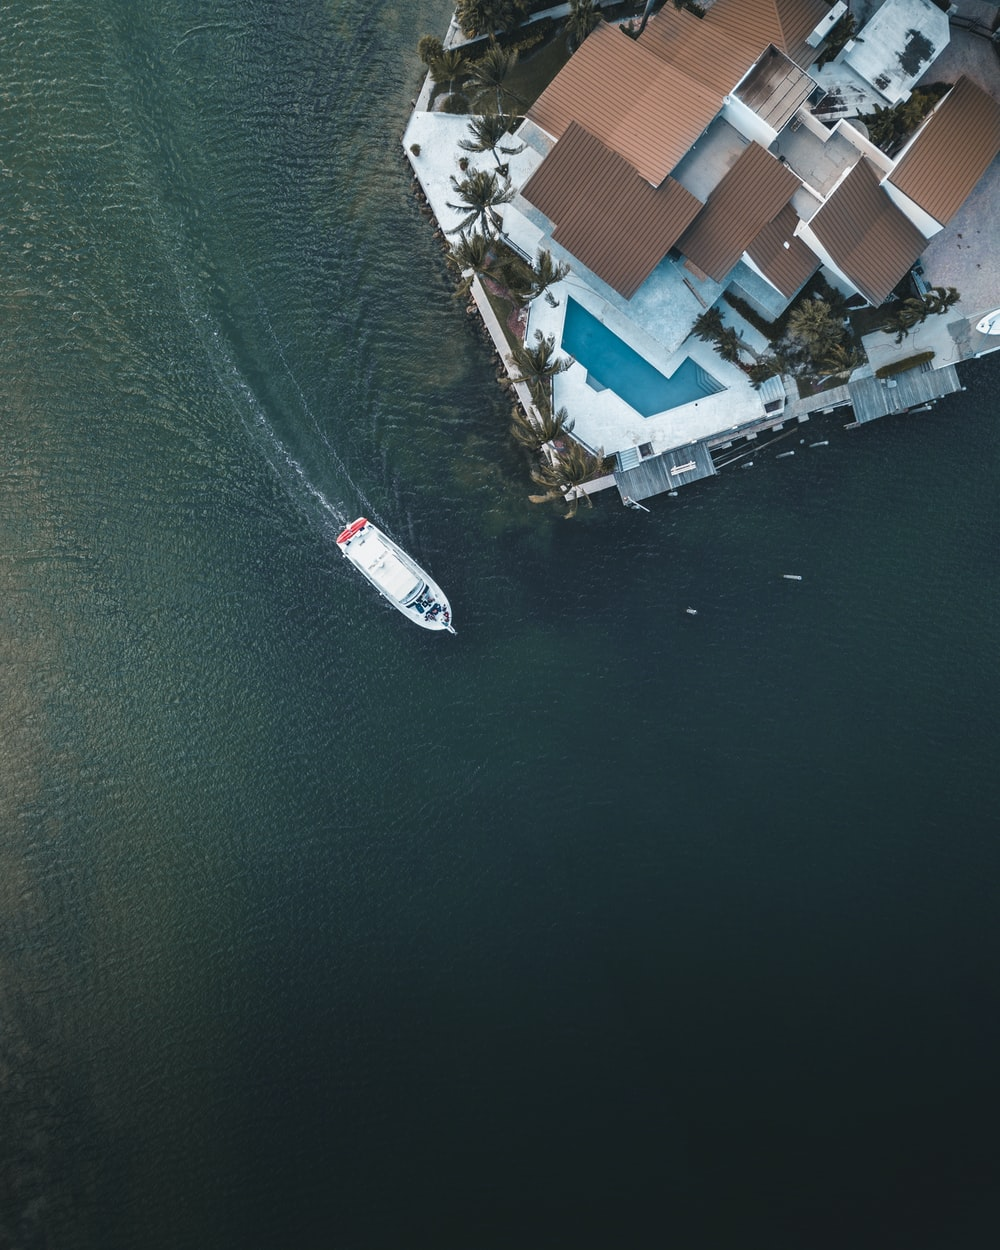 bird's eye view of boat on body of water